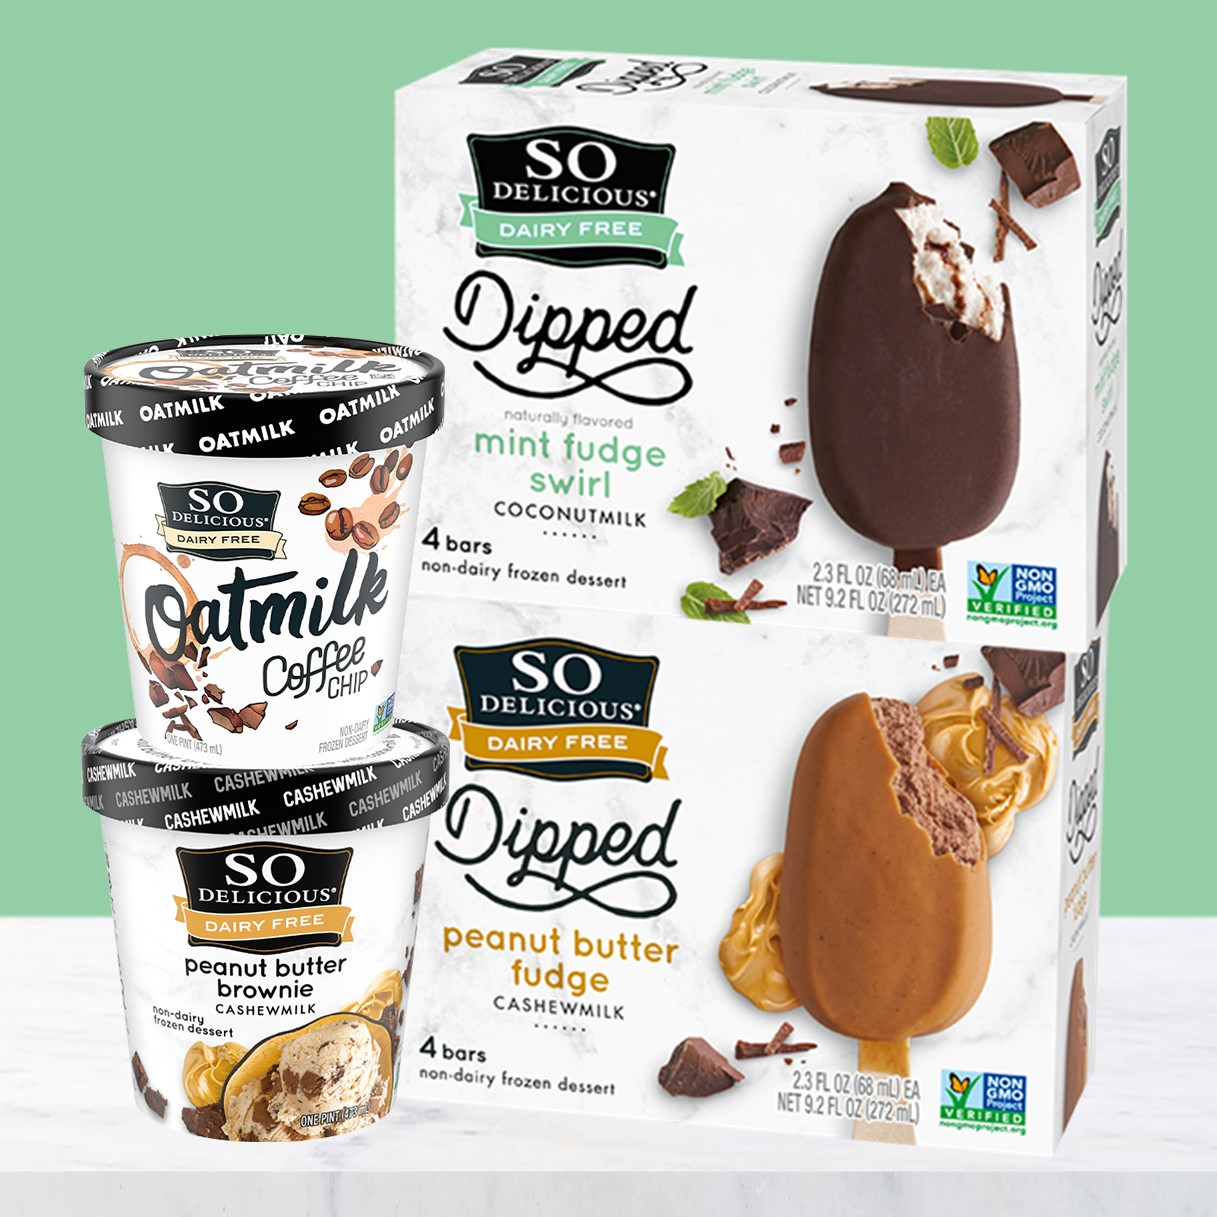 New So Delicious Frozen Dessert Products - The Latest Dairy-Free Varieties in 2021